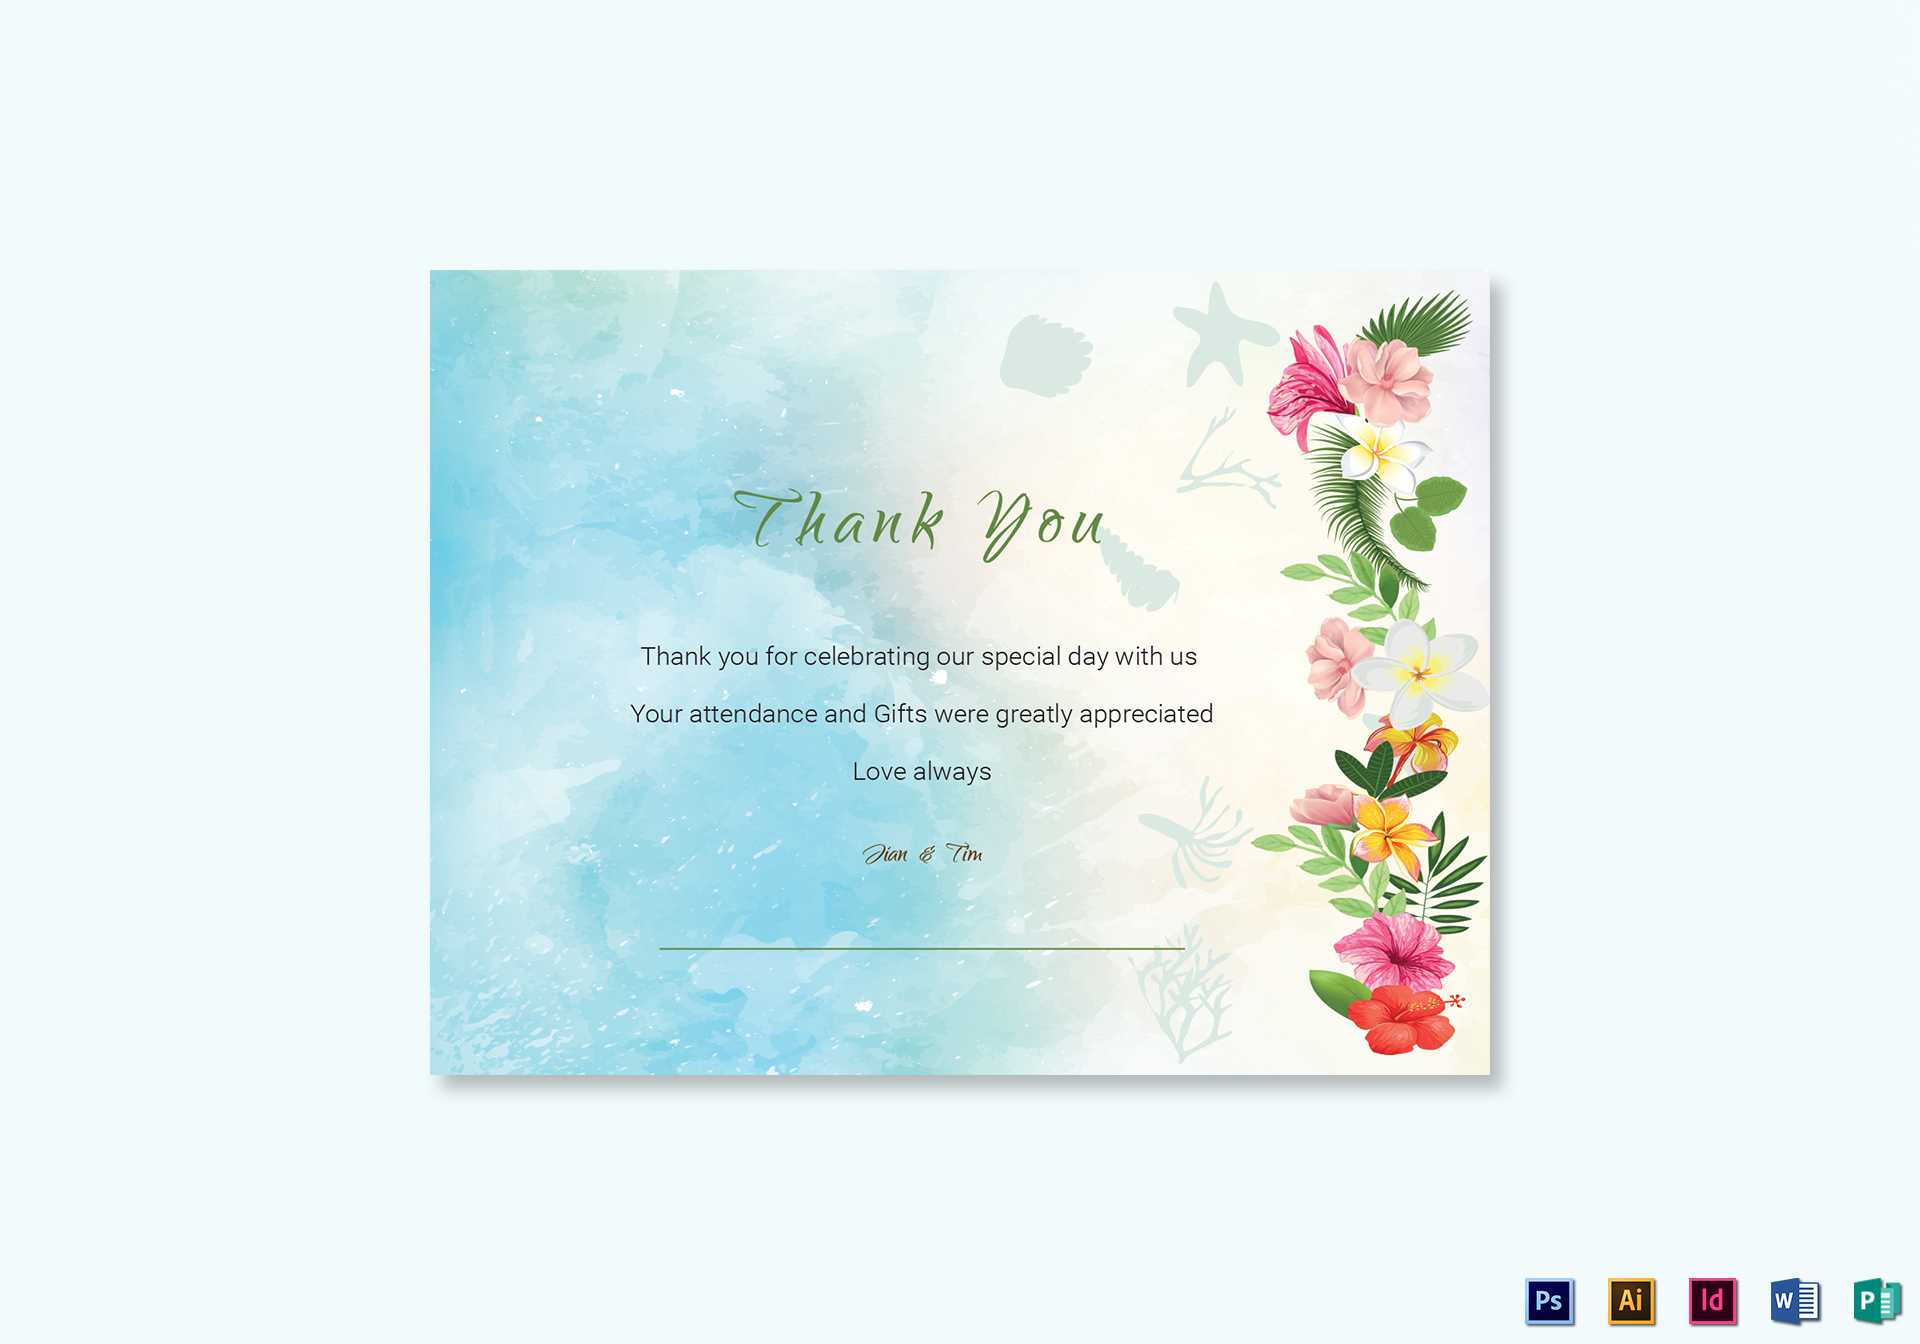 010 Thank You Card Template Word Top Ideas Business Free With Thank You Card Template Word